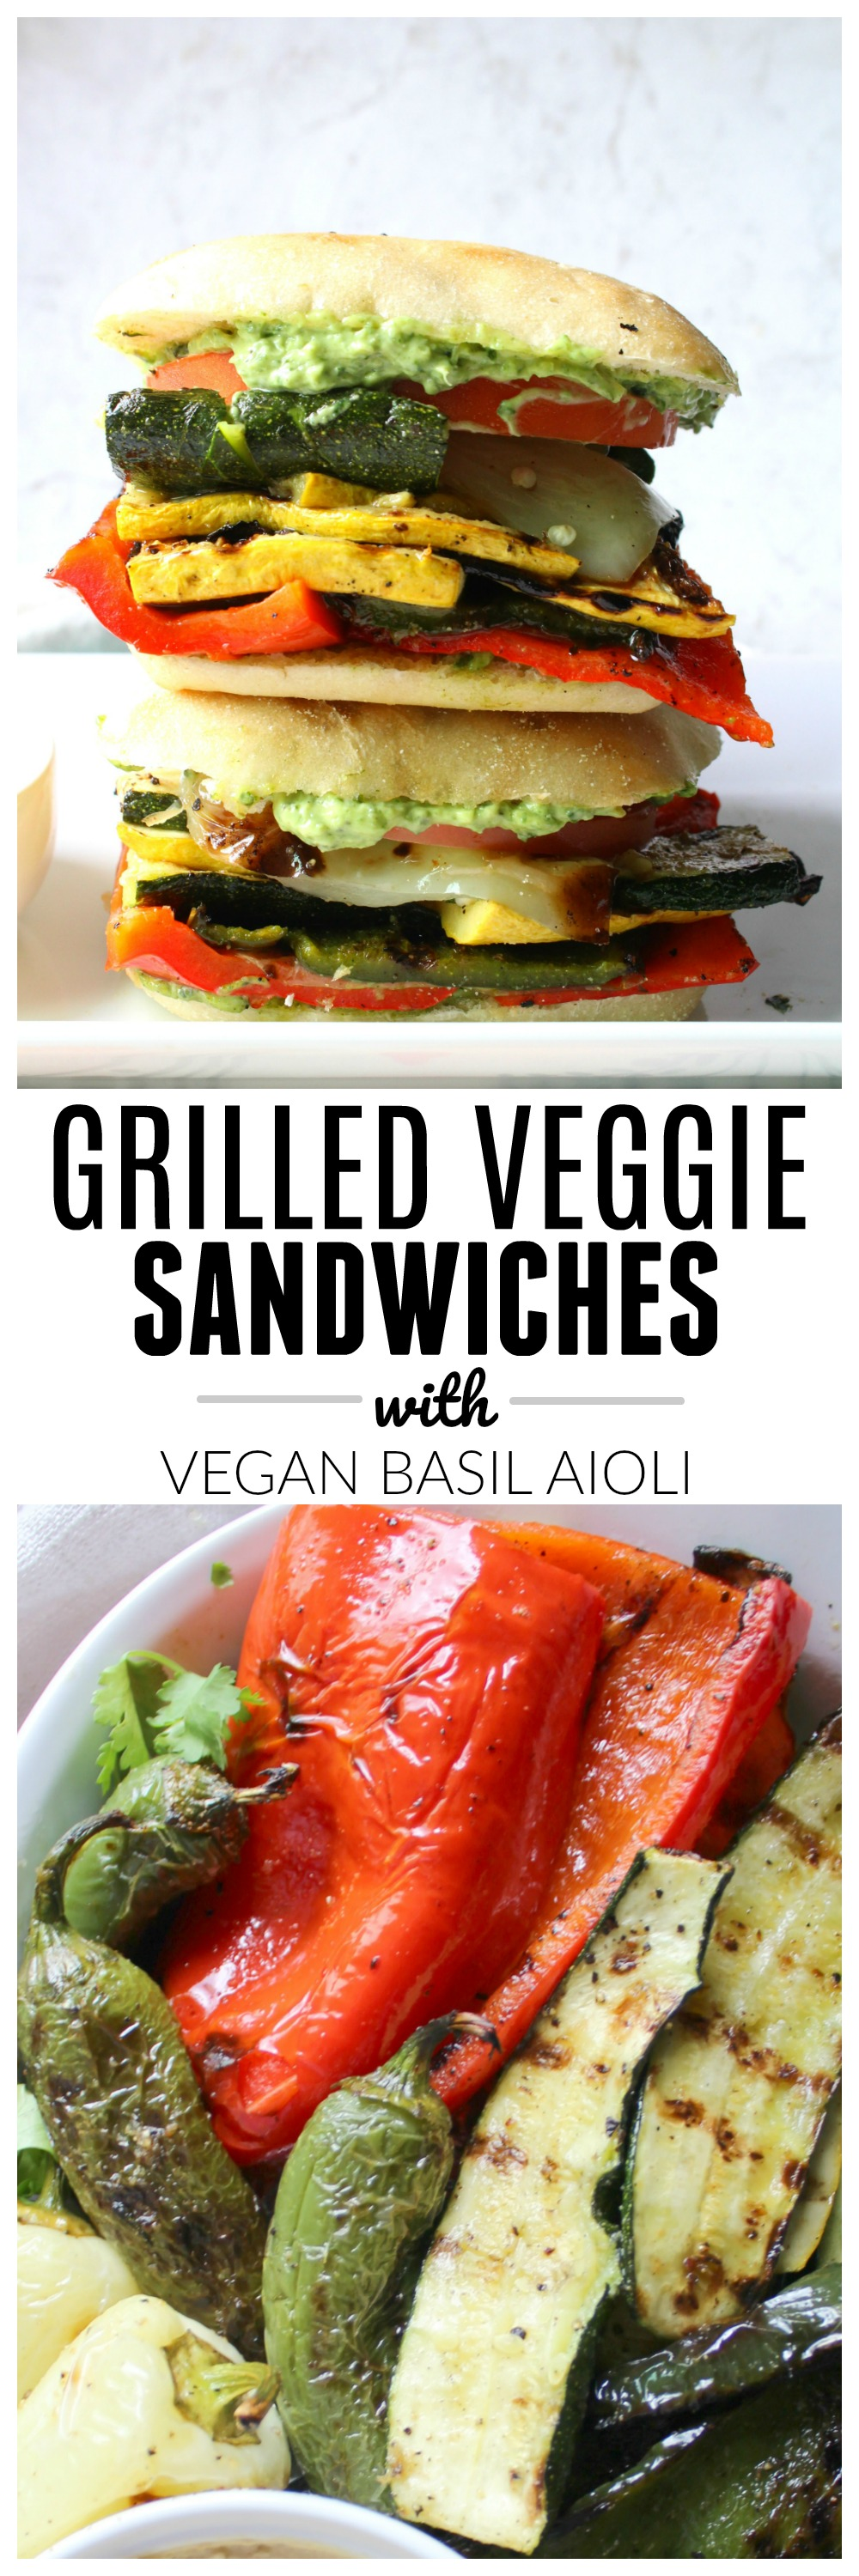 This Grilled Veggie Sandwich with Vegan Basil Aioli is packed full of marinated veg and a creamy spread filled with garlic and fresh basil   ThisSavoryVegan.com